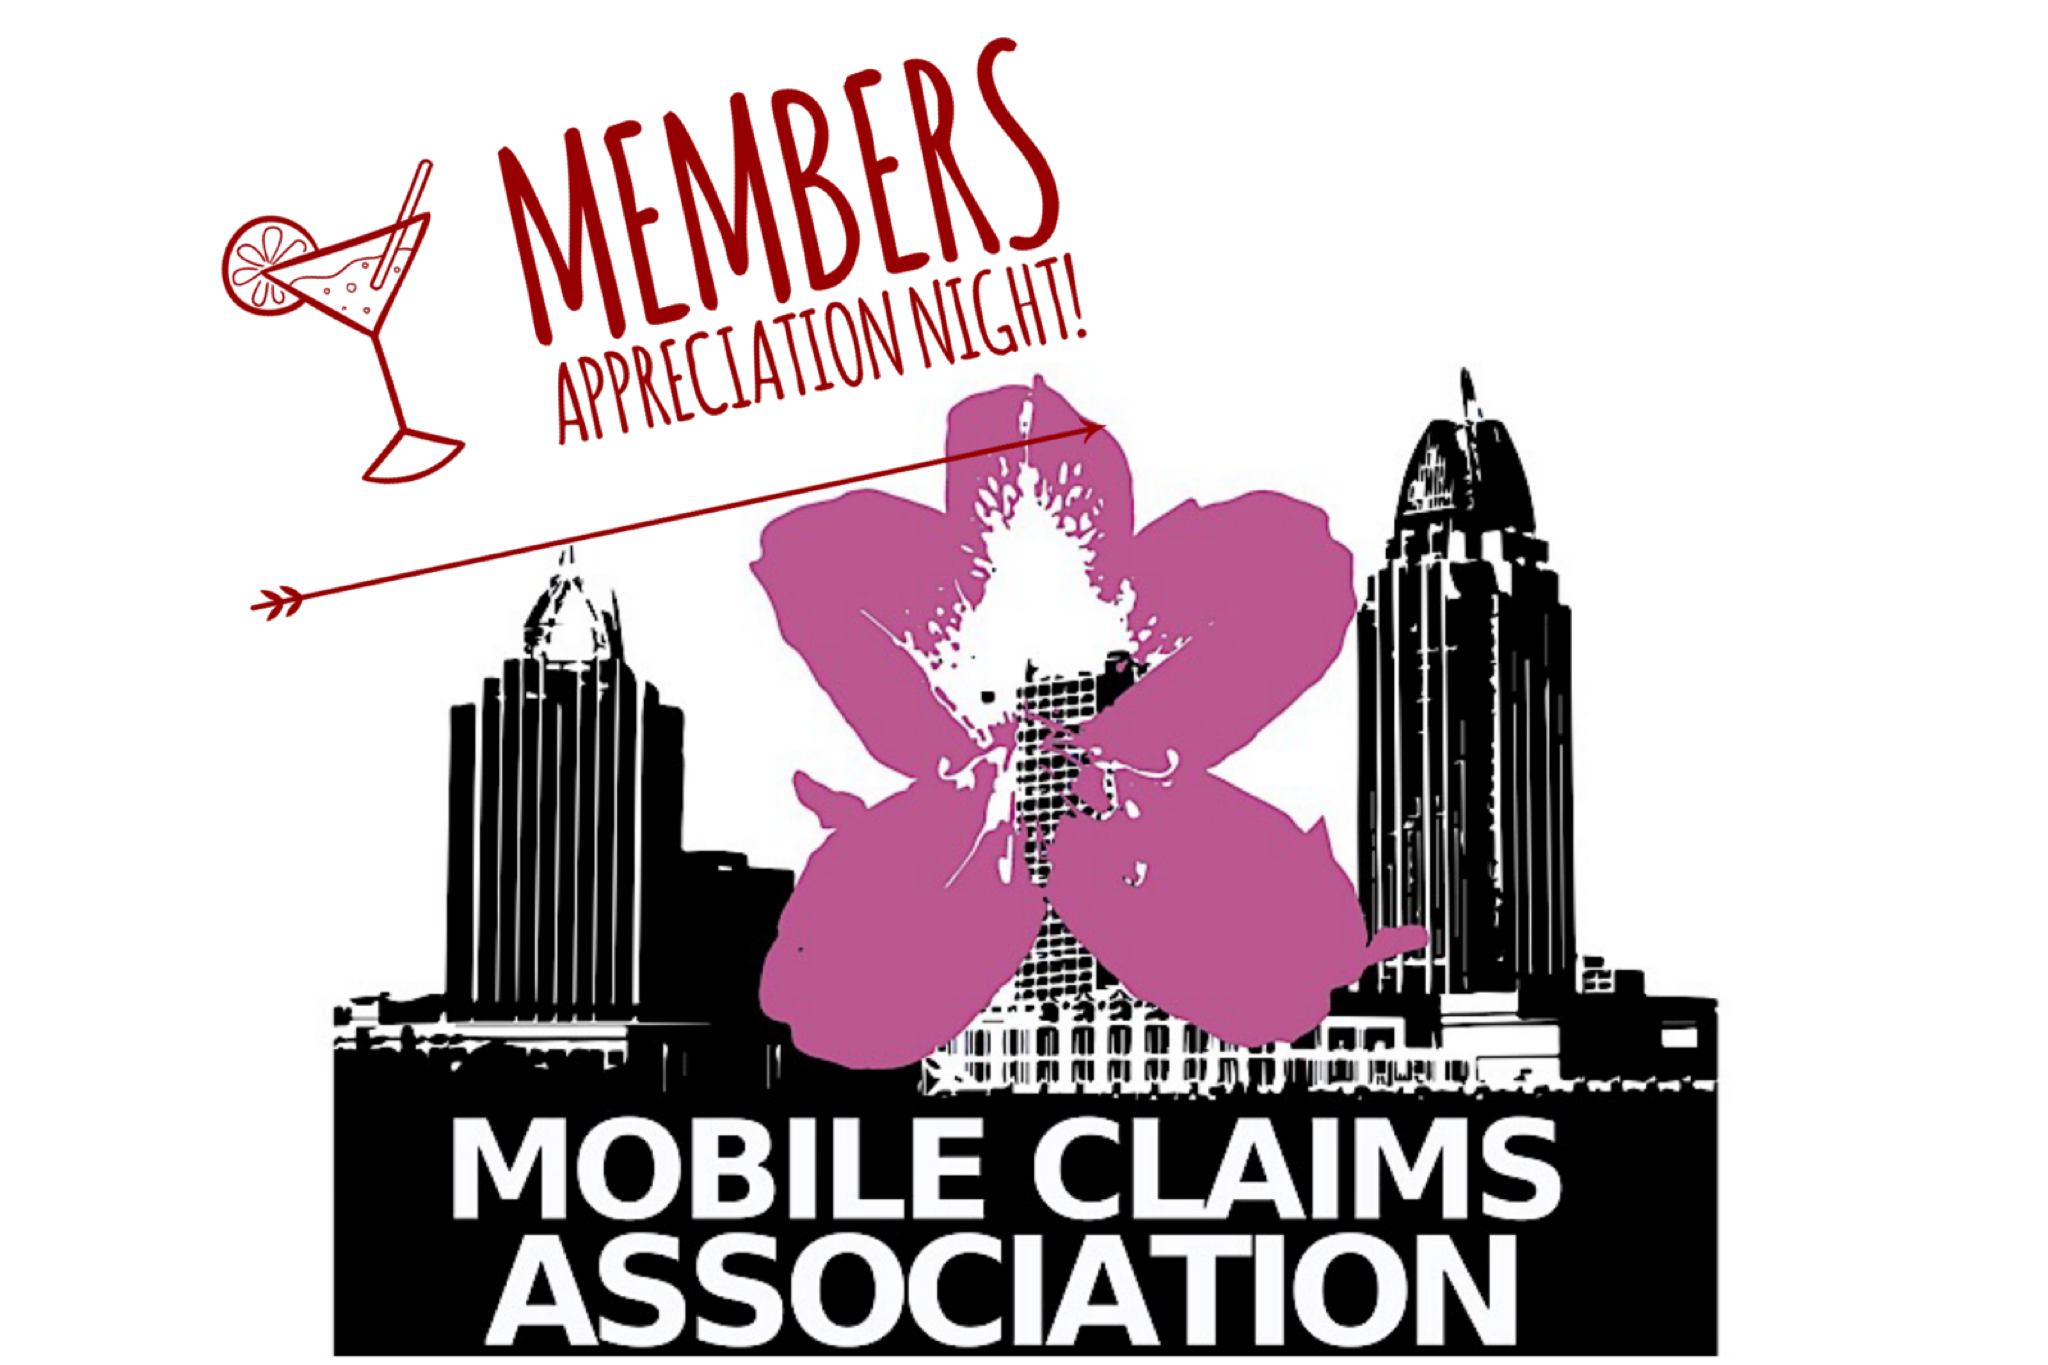 mca_members_appreciation_night_logo_2-1.png